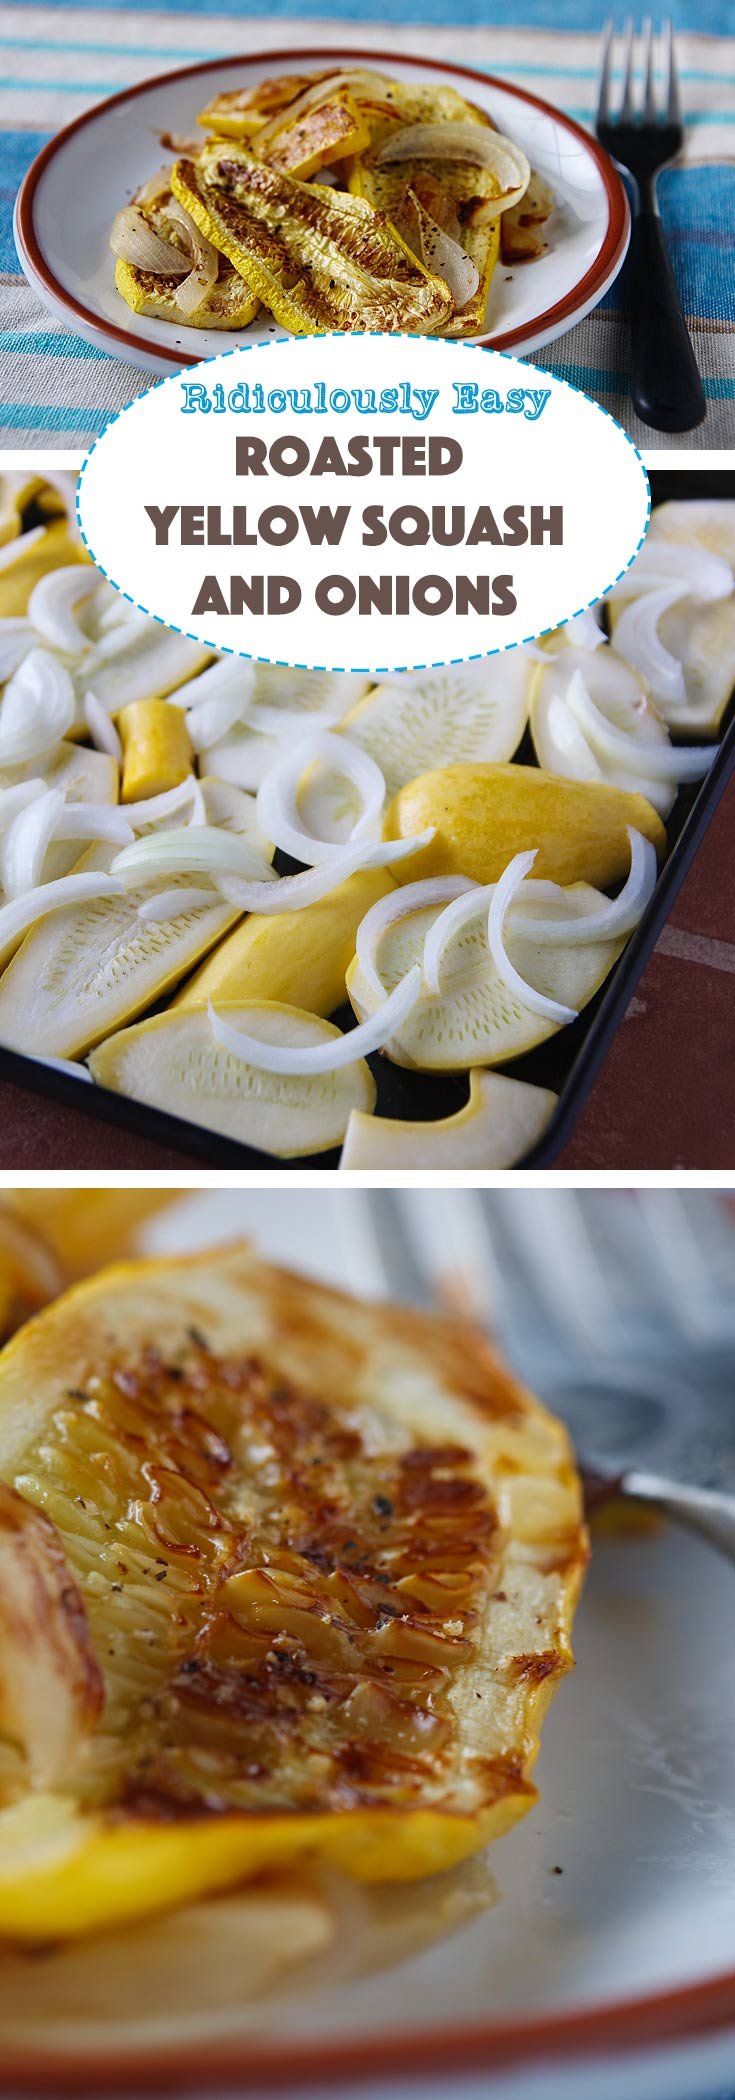 Roasting yellow squash with onions gives them a deep, rich, smoky flavor. It's hard to believe they're vegan and fat-free!